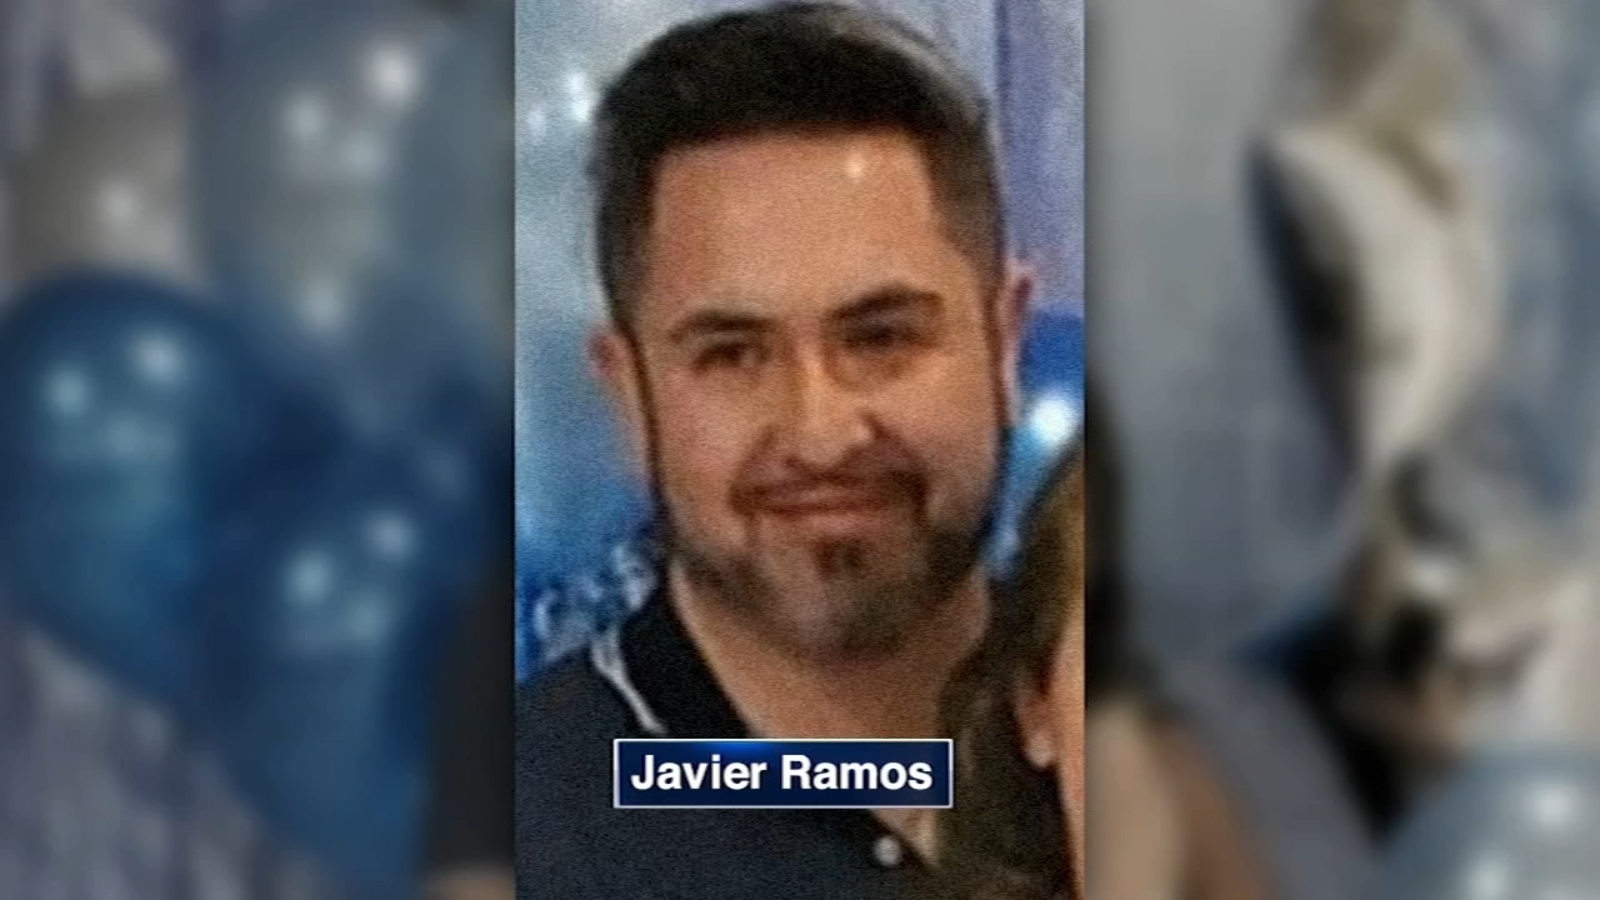 uber-driver-fatally-shot-trying-to-fight-carjacker